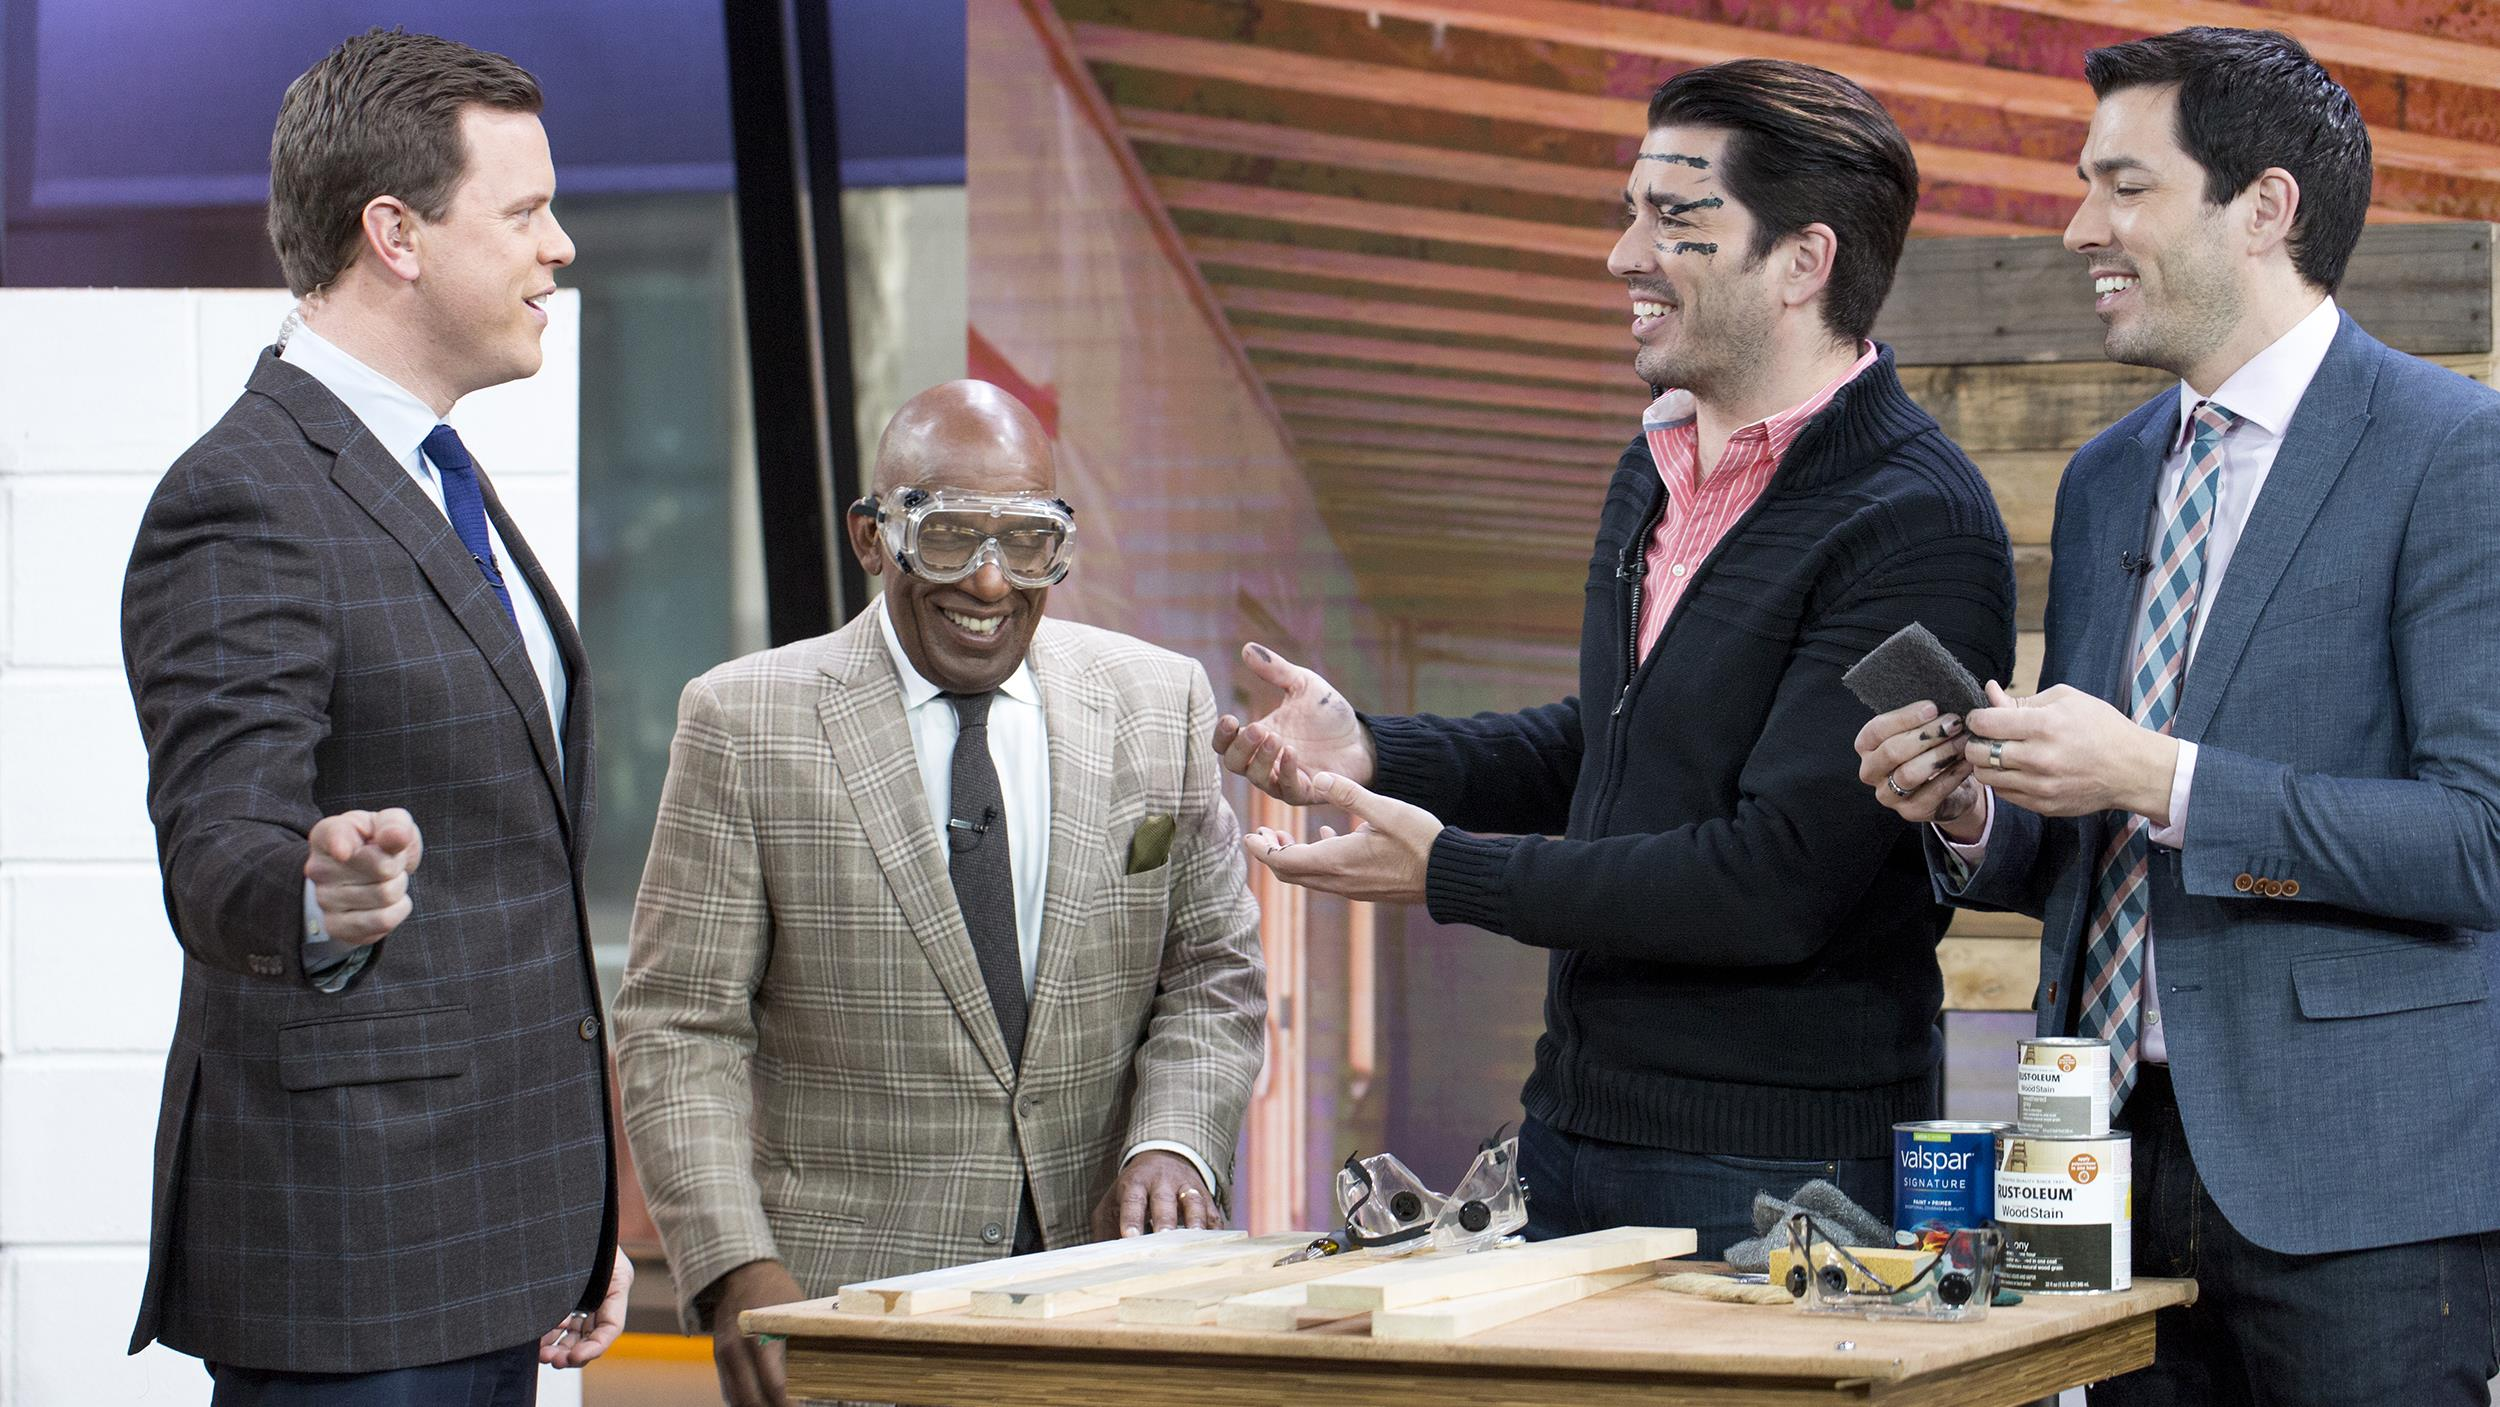 property brothers do basement reno and get pranked by willie geist todaycom - Where Are Property Brothers From